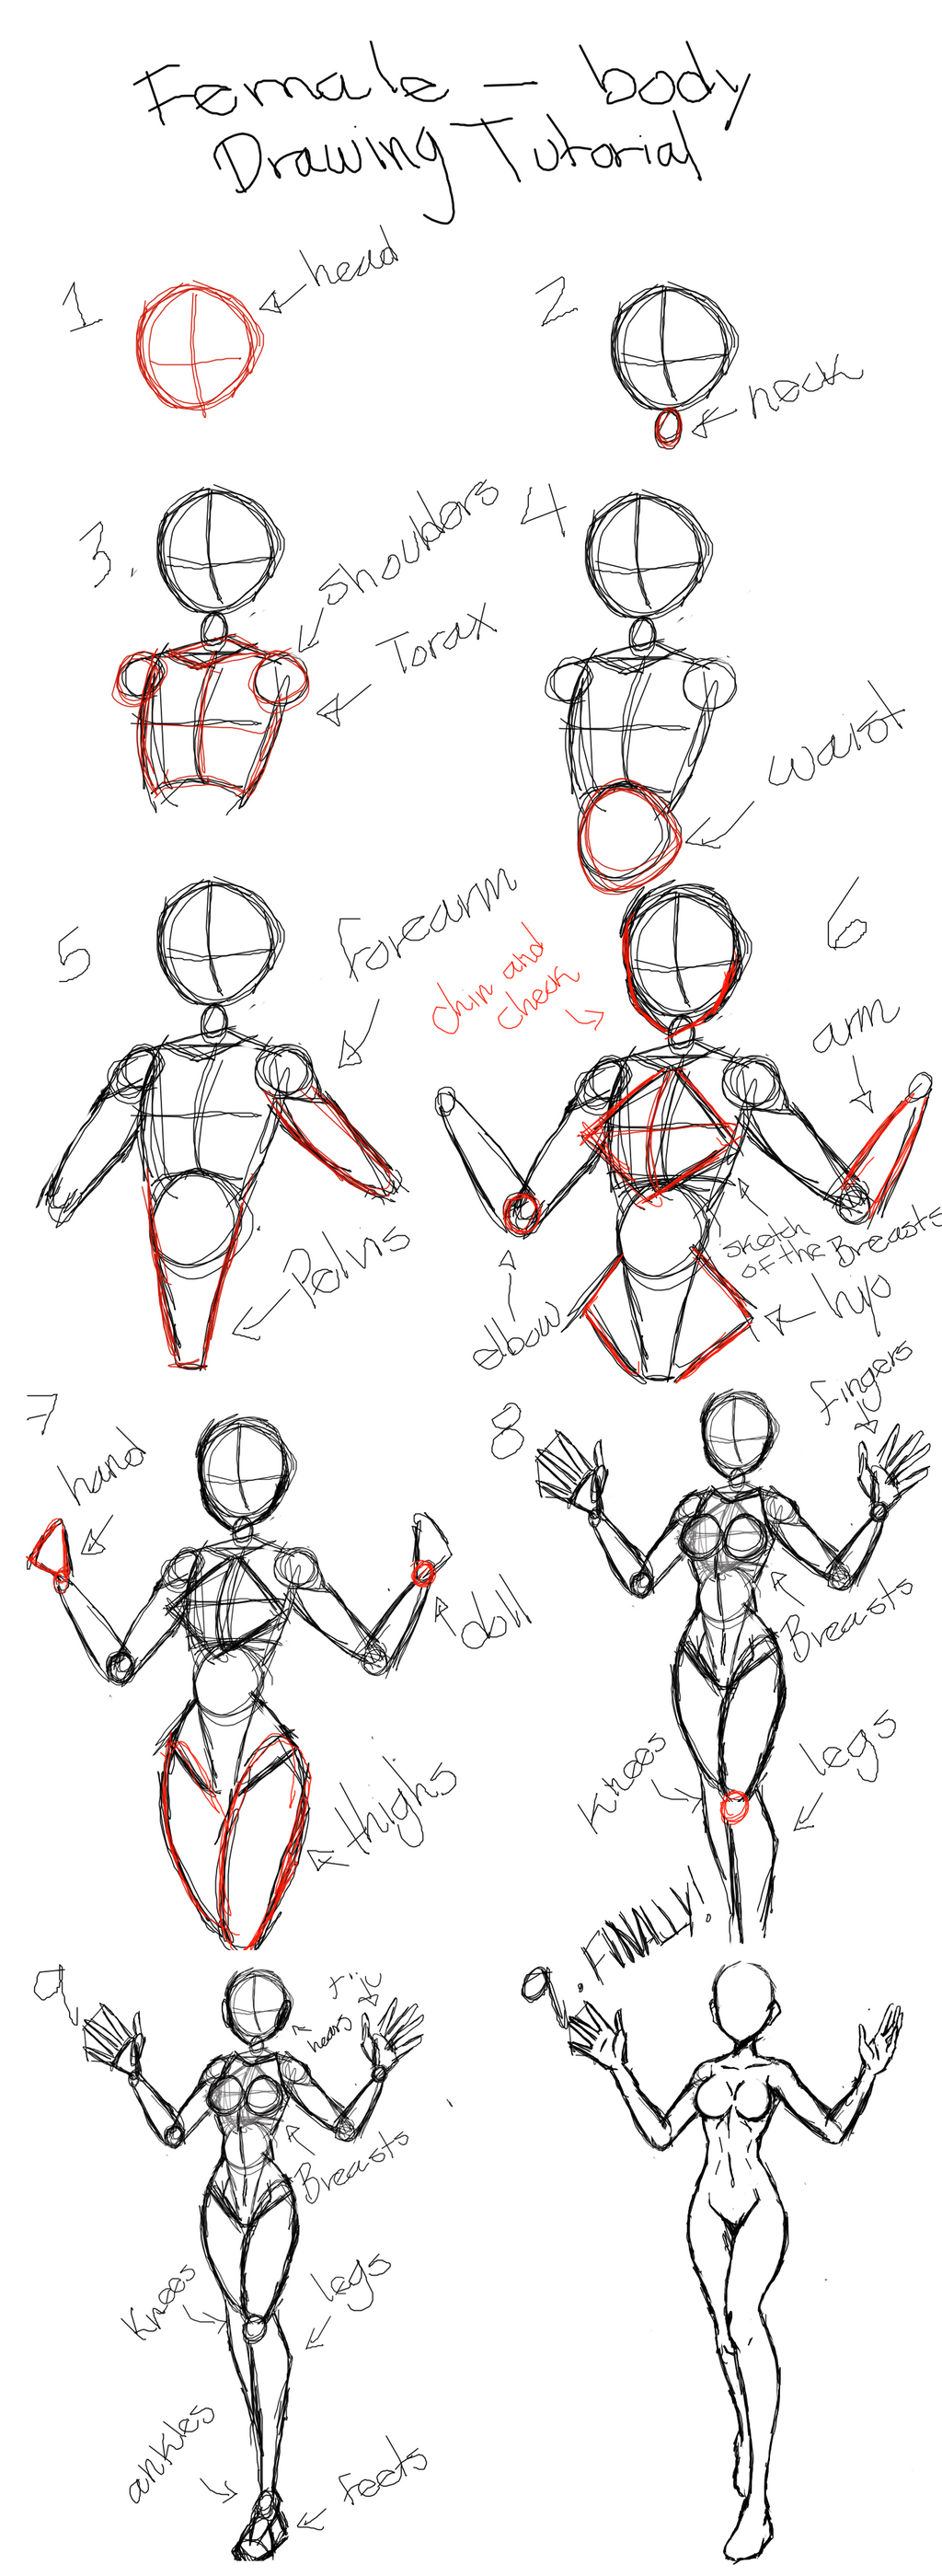 female body drawing tutorial by klfunsskxd on deviantart